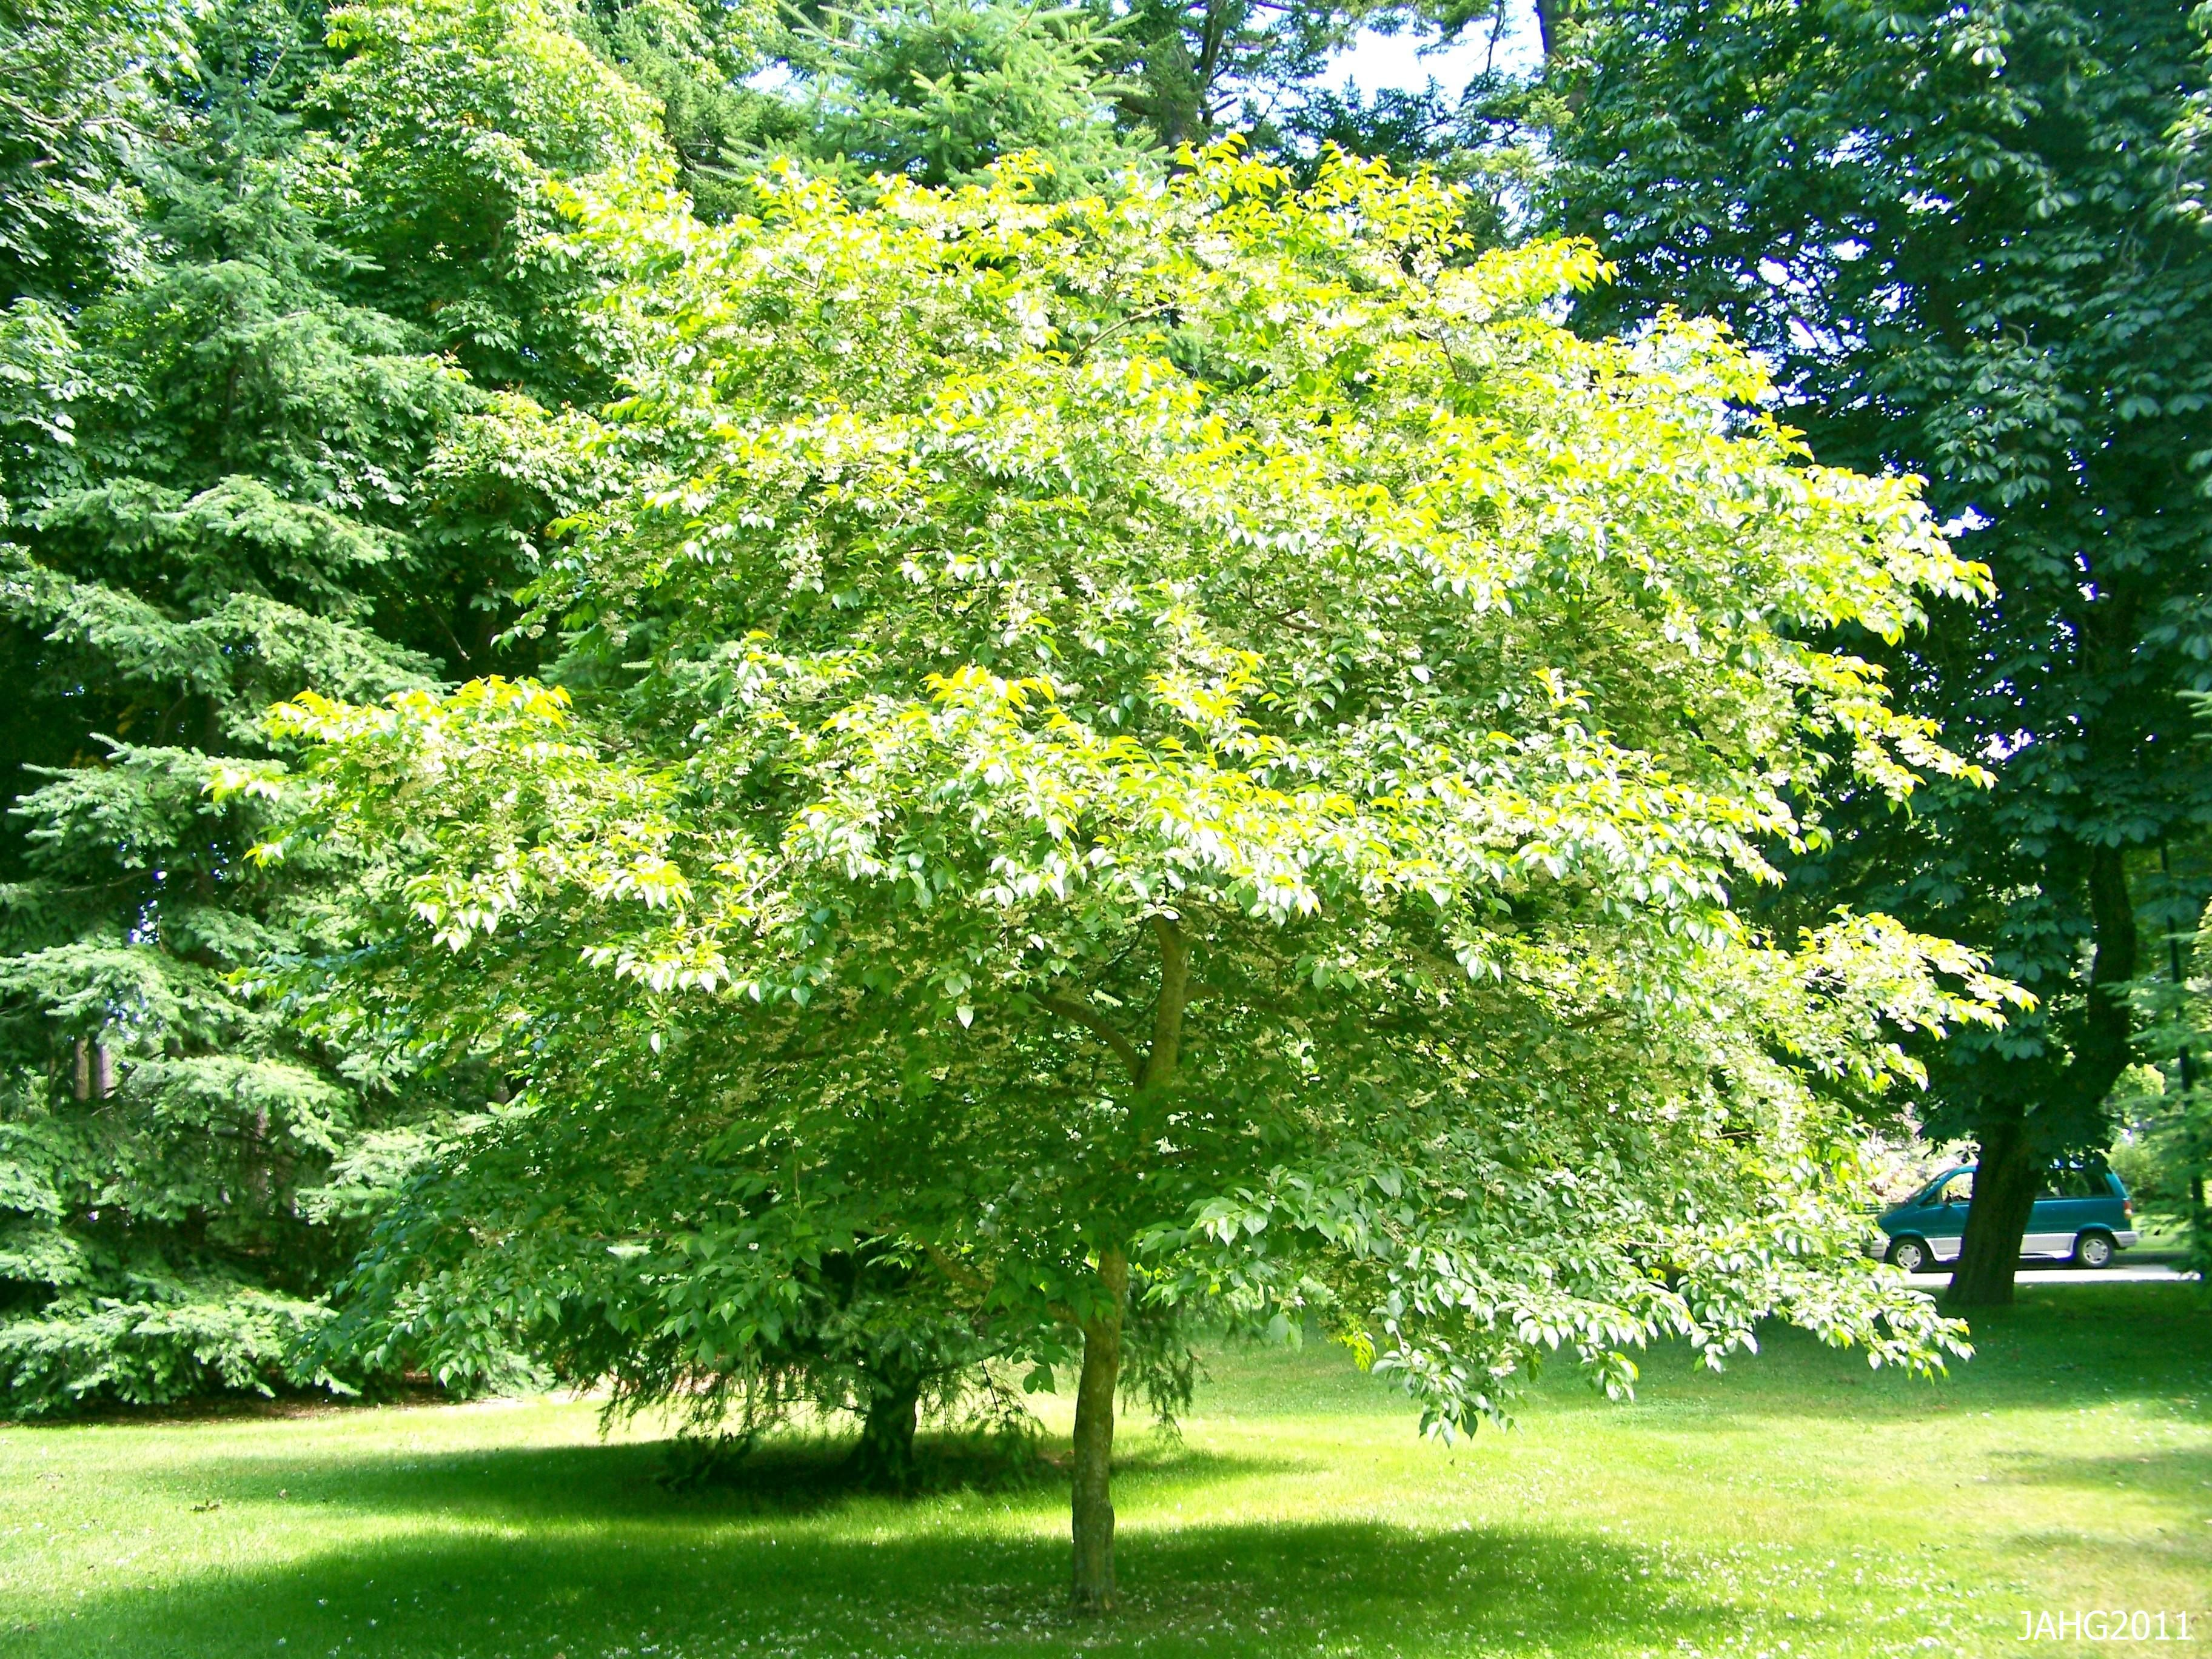 styrax japonicus japanese snowbell tree - Google Search | Trees ...